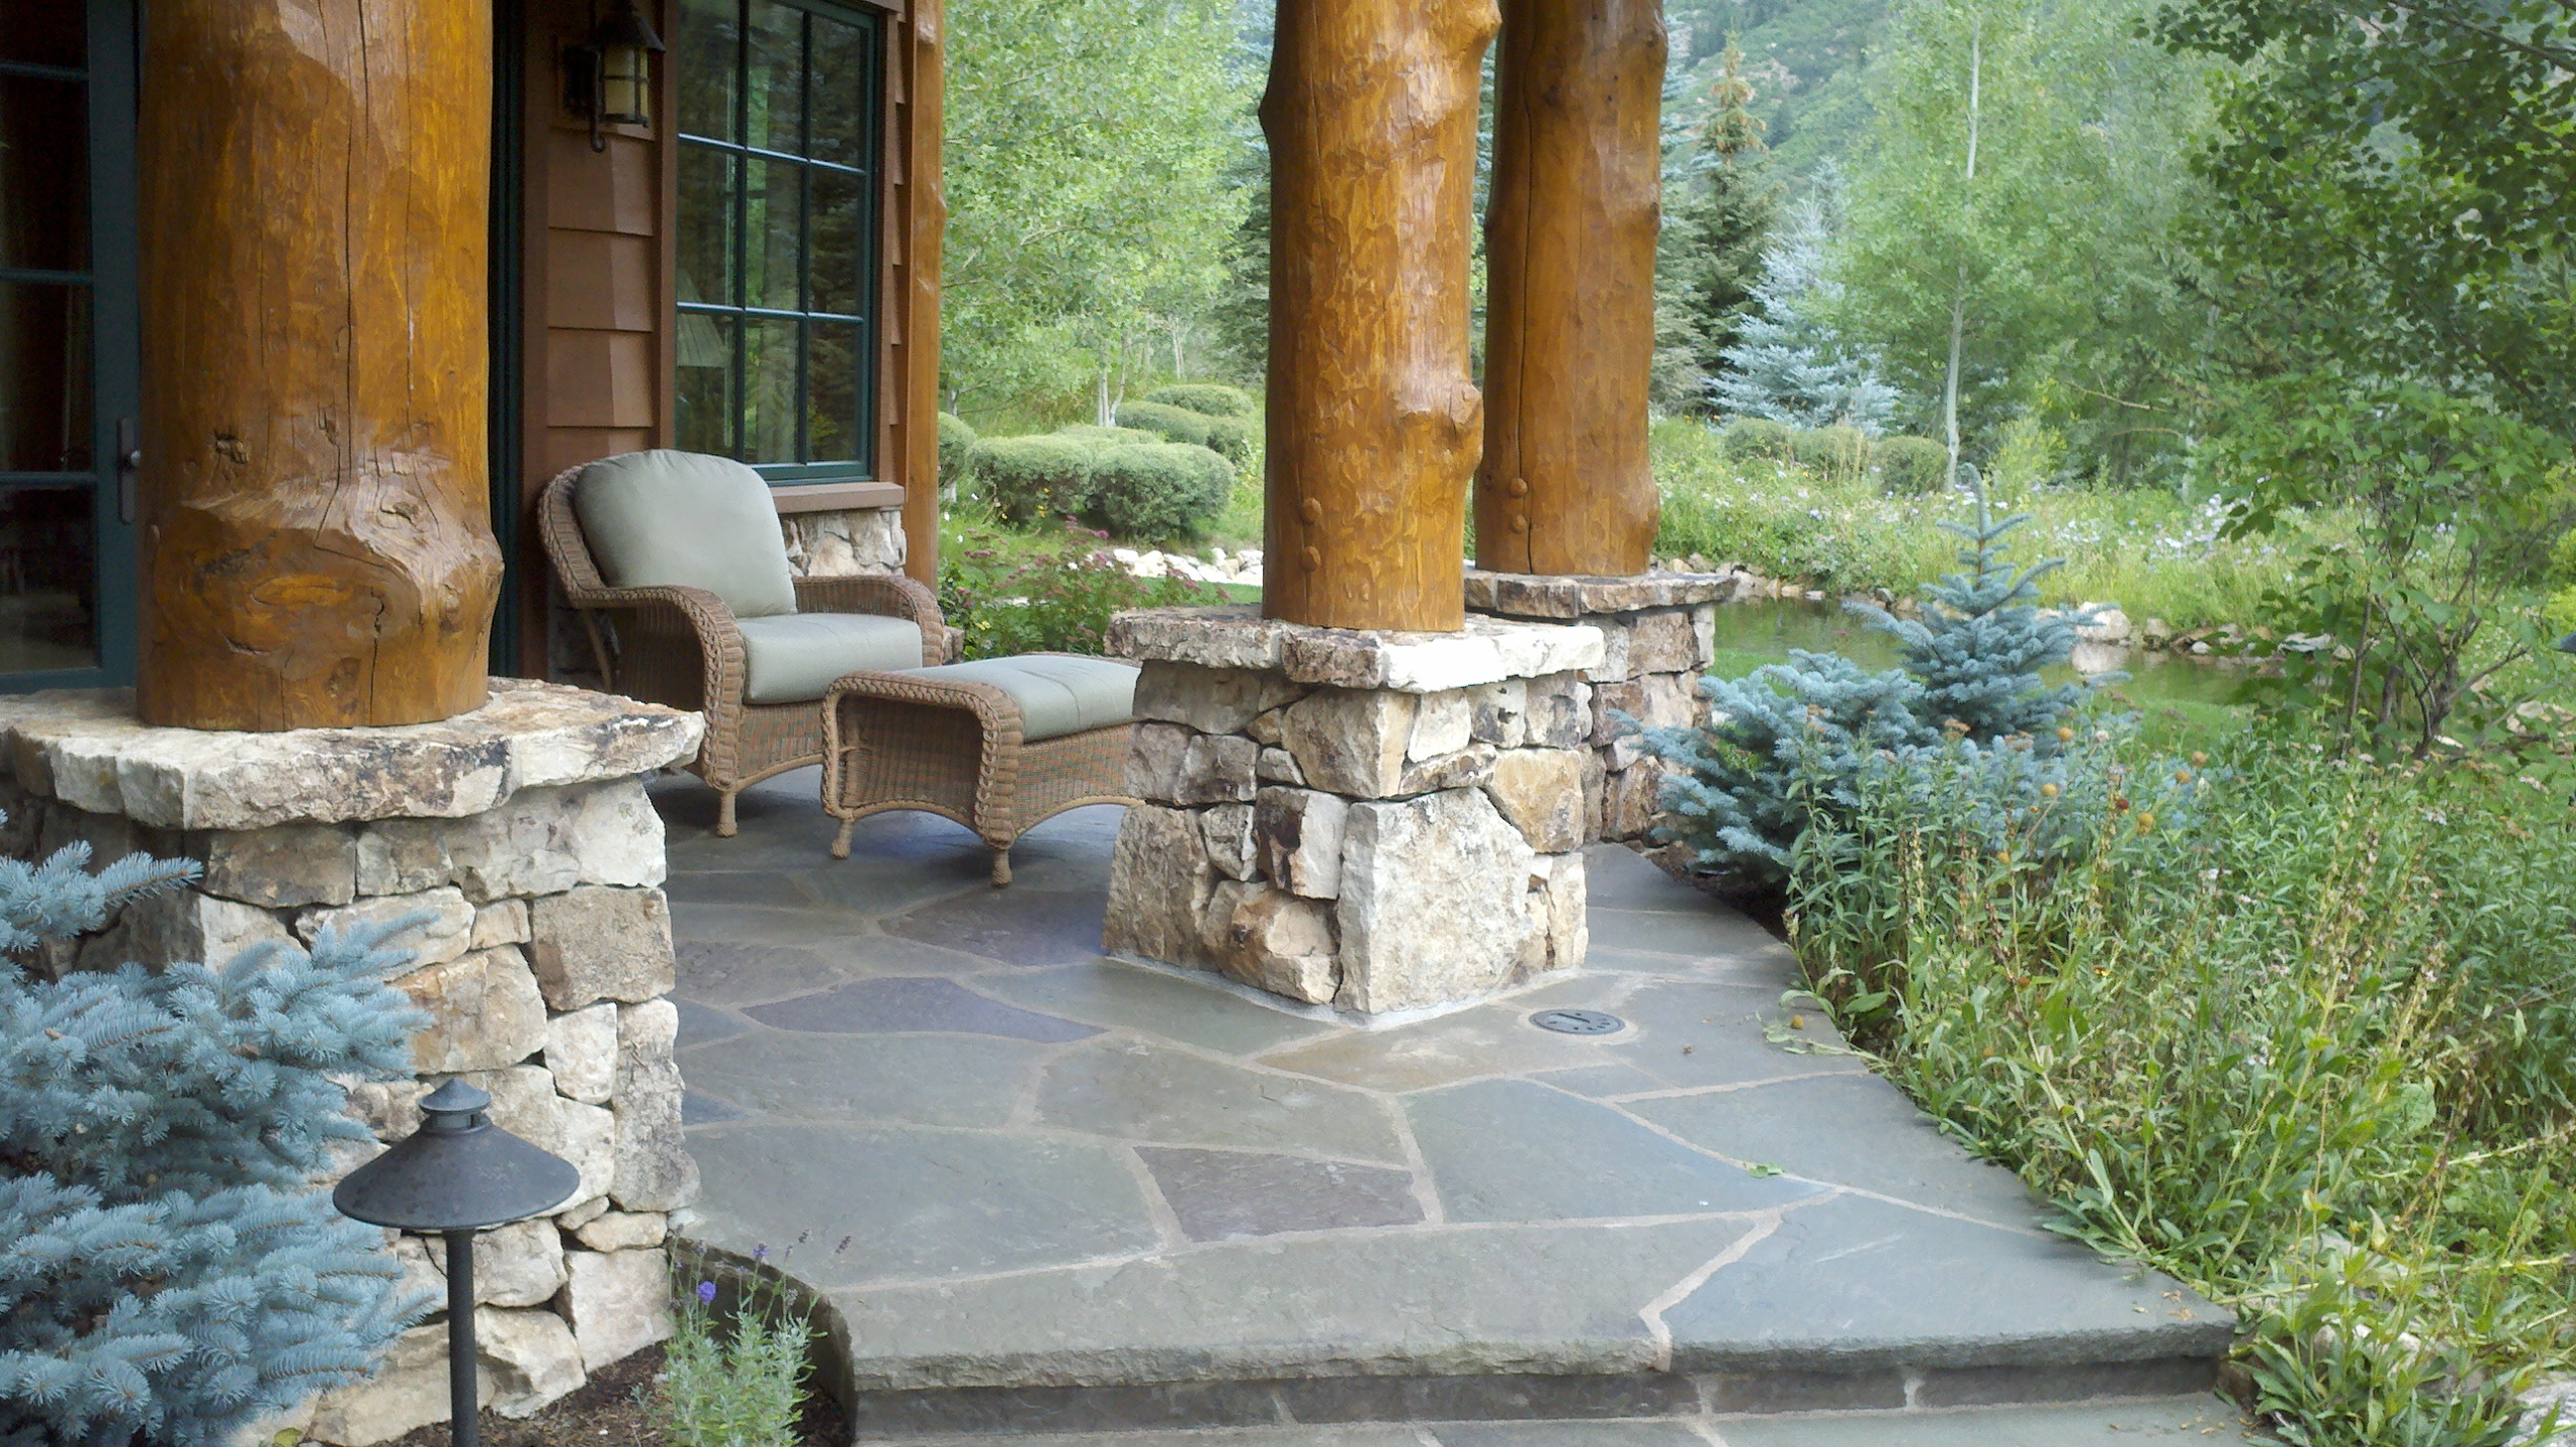 Flagstone mortar set on concrete